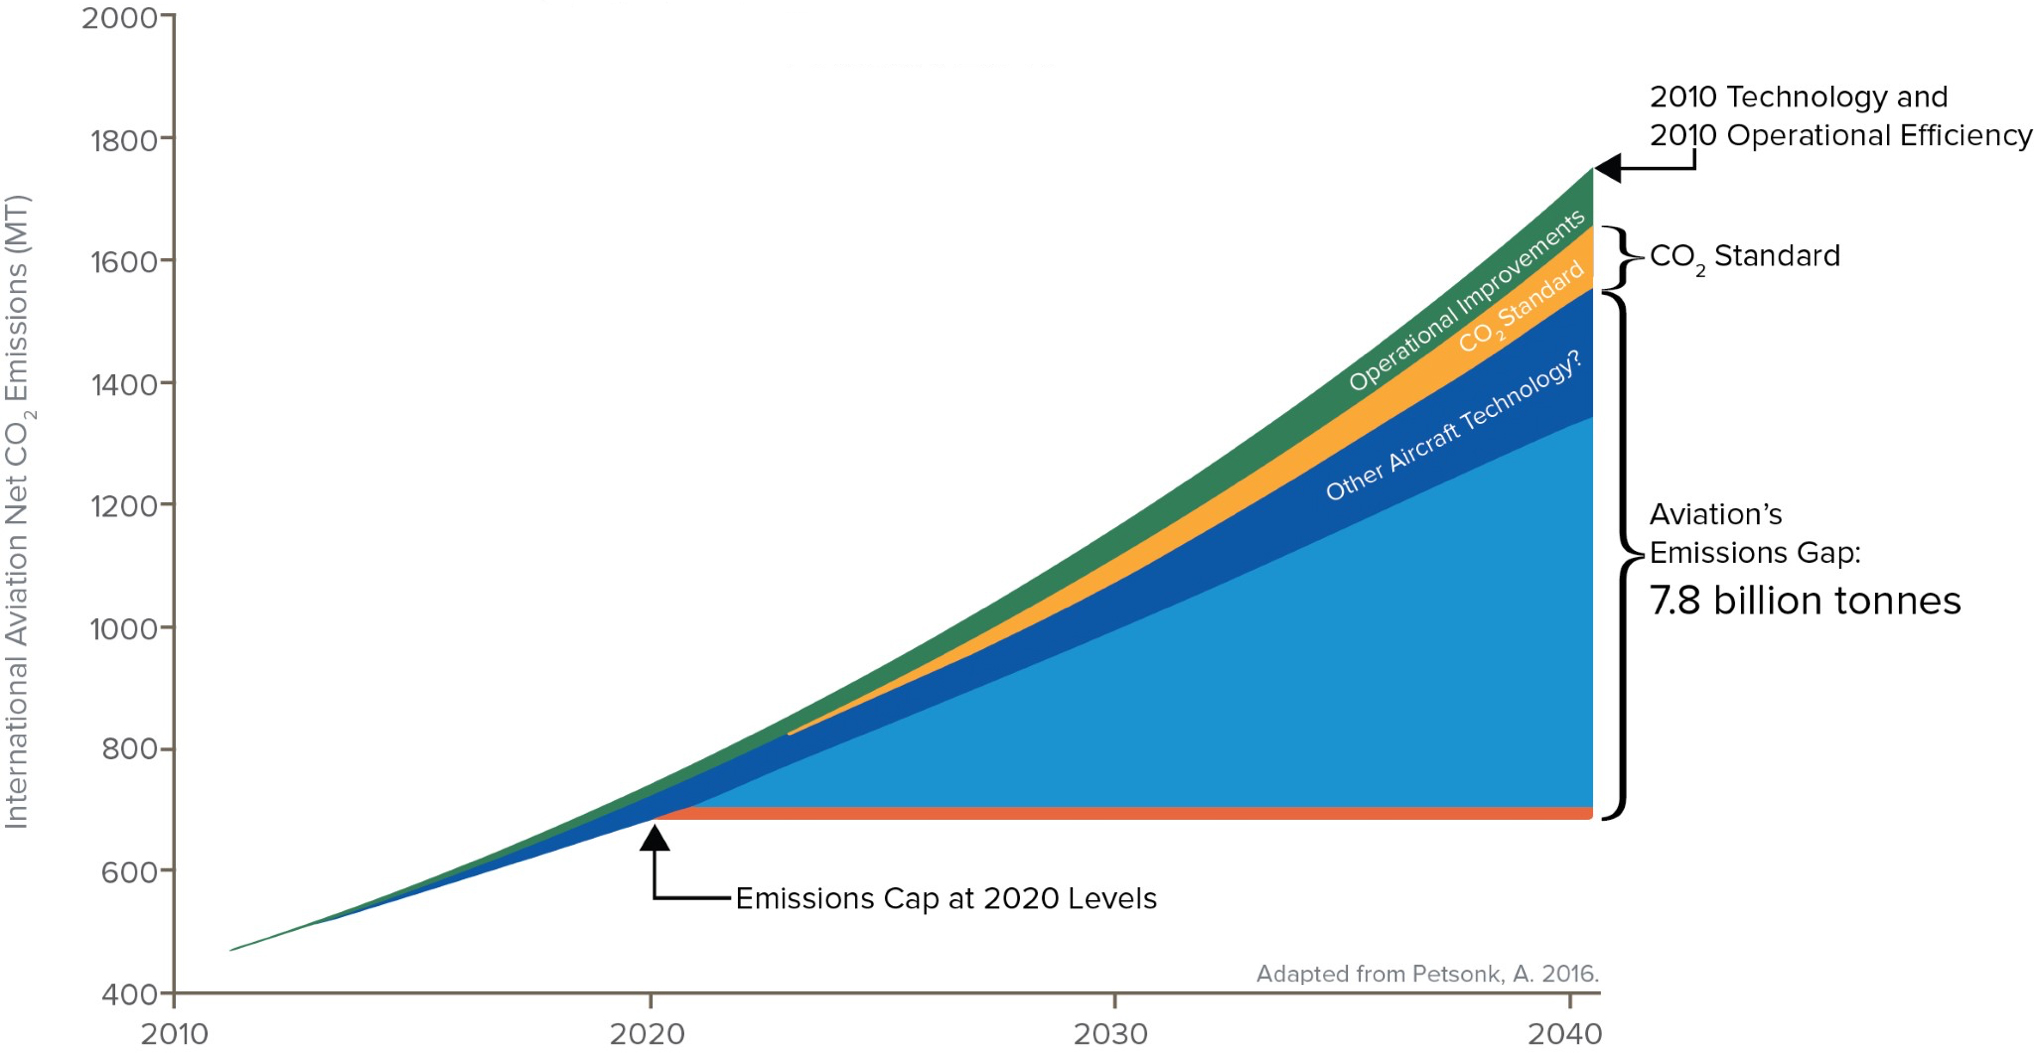 A graph showing projected aviation emissions through 2040